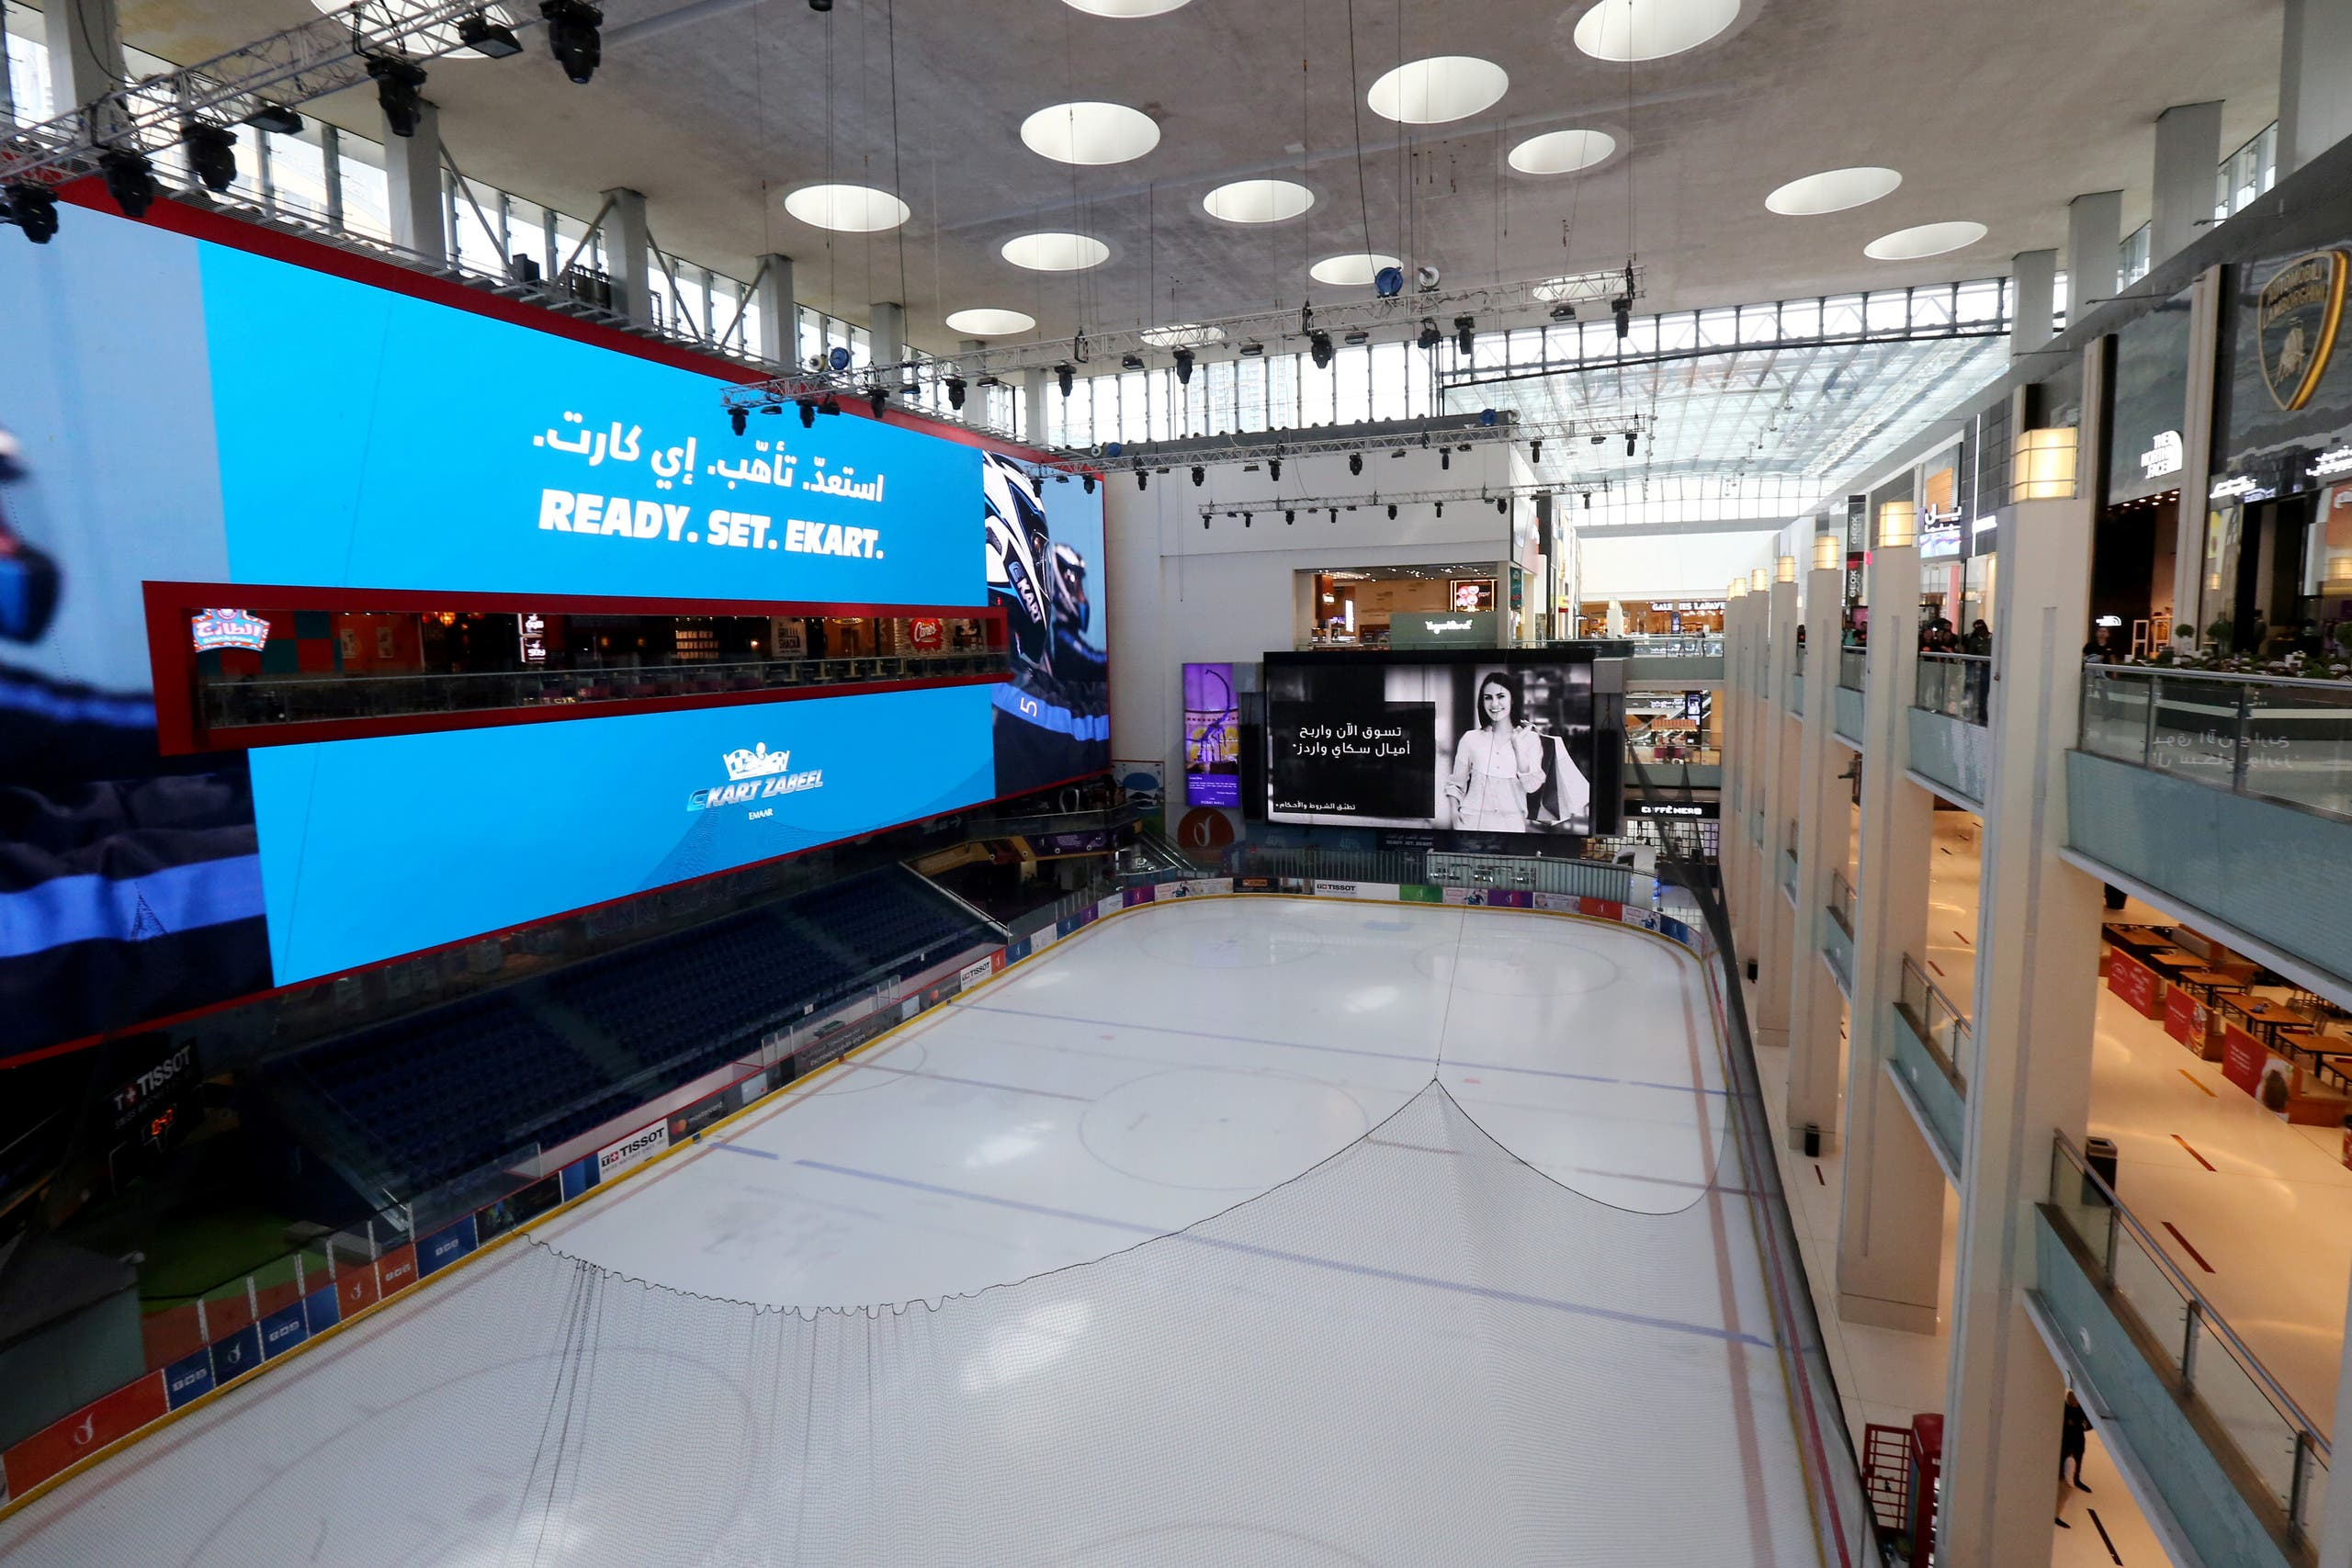 The ice rink at Dubai's mall seen empty under lockdown conditions. (Reuters)